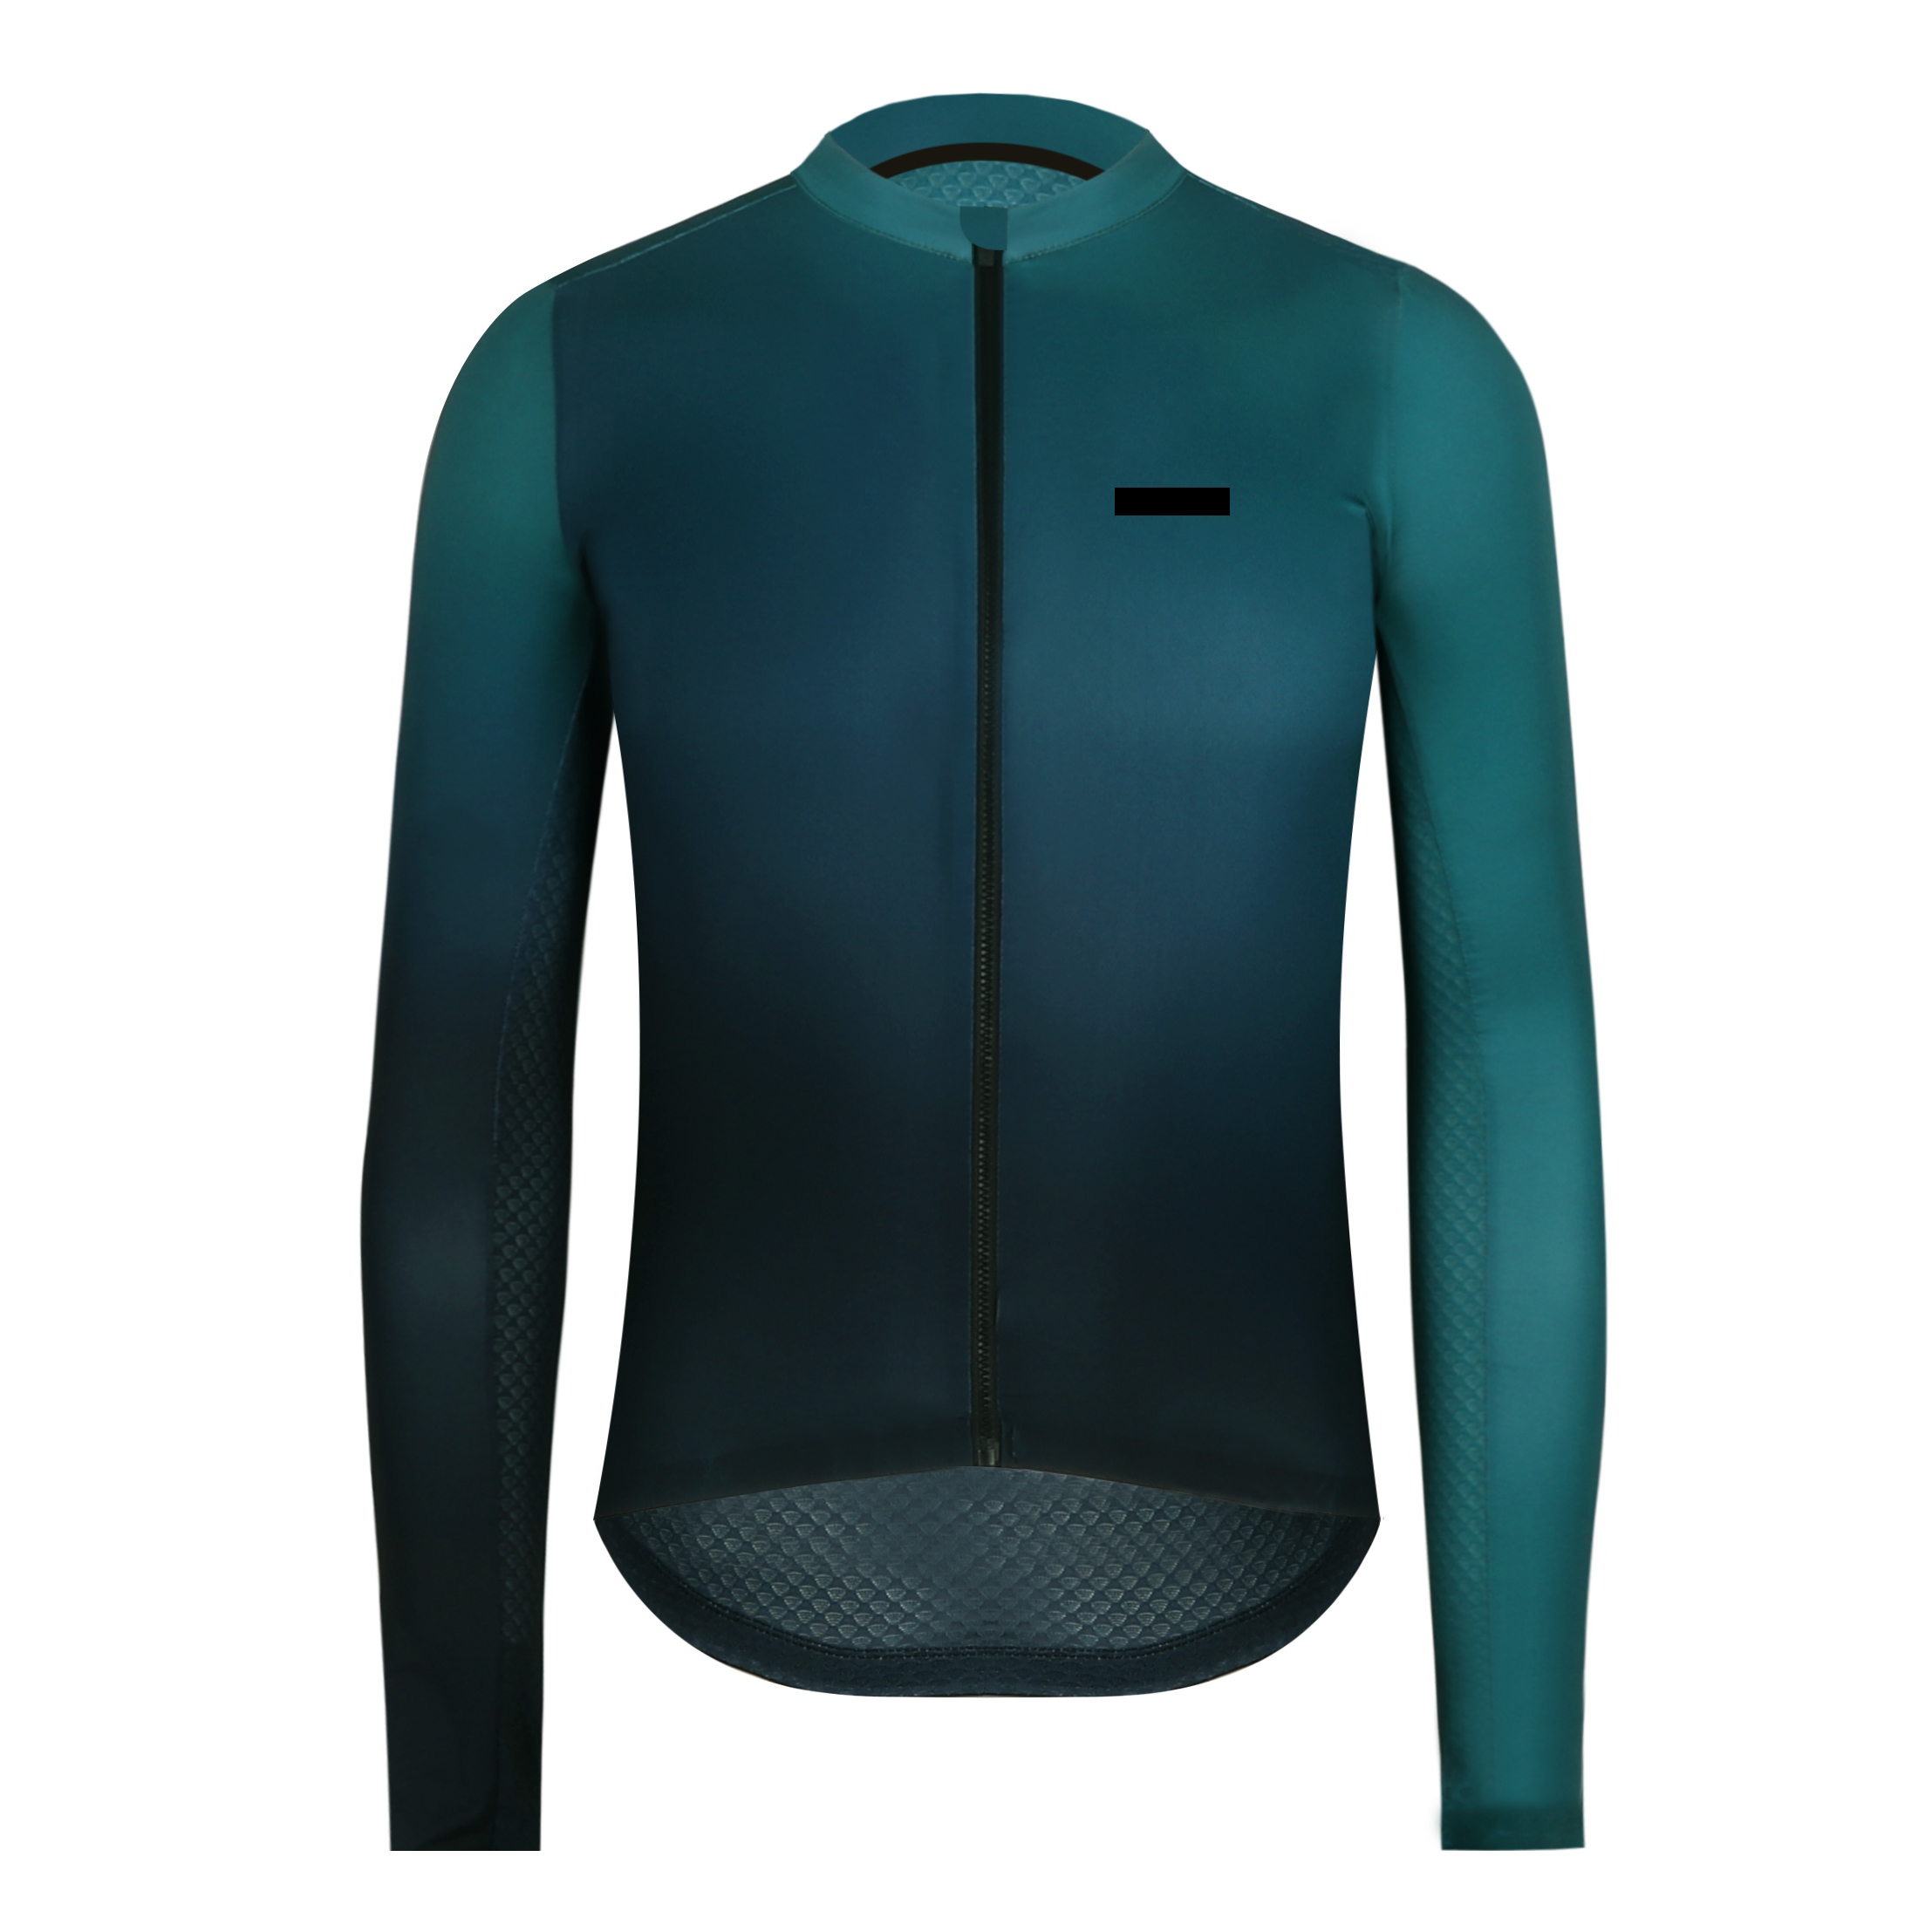 SPEXCEL 2020 New Colourburn Lightweight Aero Cycling Jersey Long Sleeve Road Mtb Bicycle Jerseys 3 Kinds Of Different Fabric